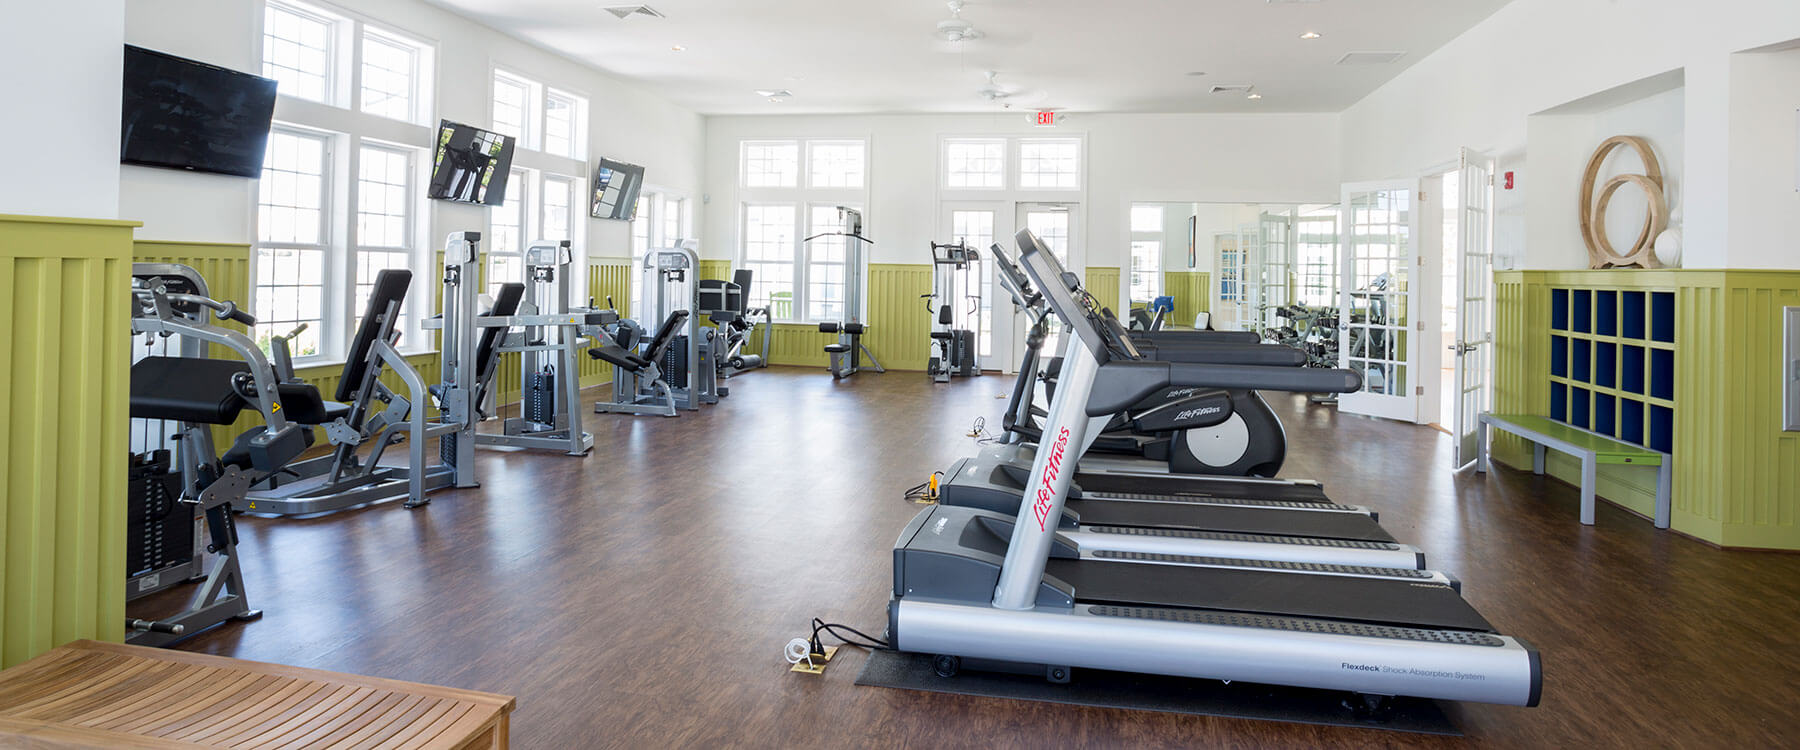 millville by the sea fitness center 1800x750